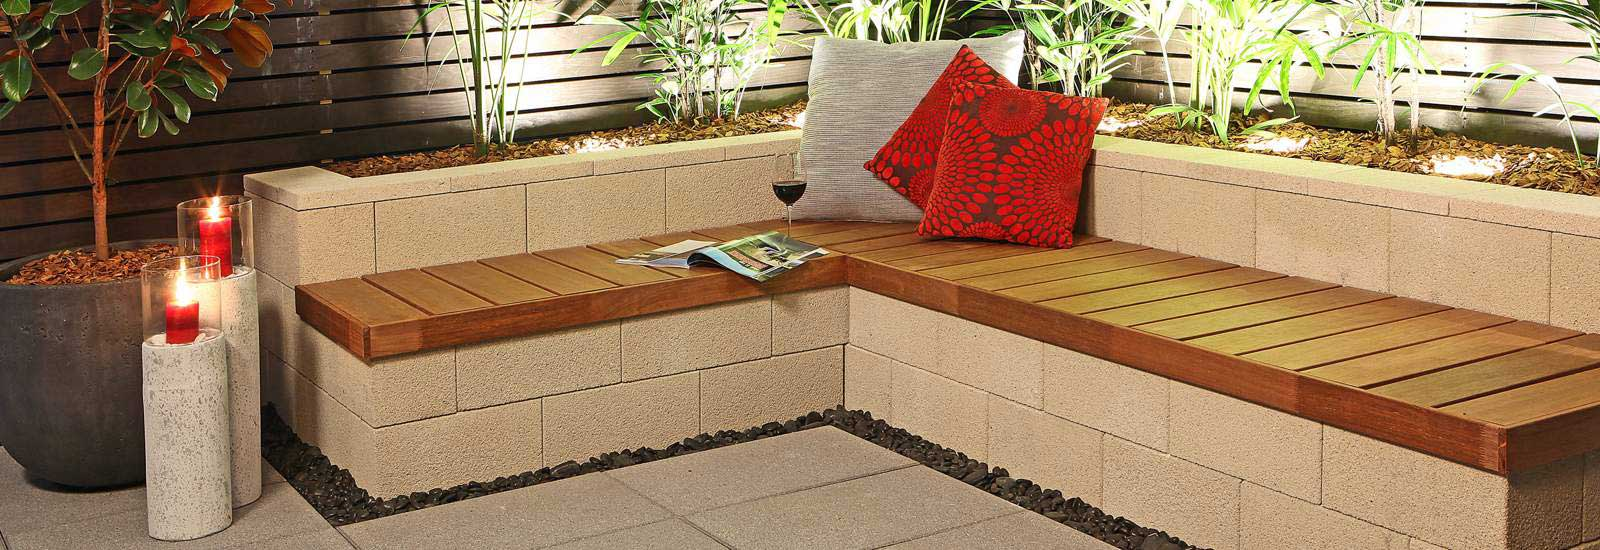 Total Outdoor Living Leading Provider Of Outdoor Living